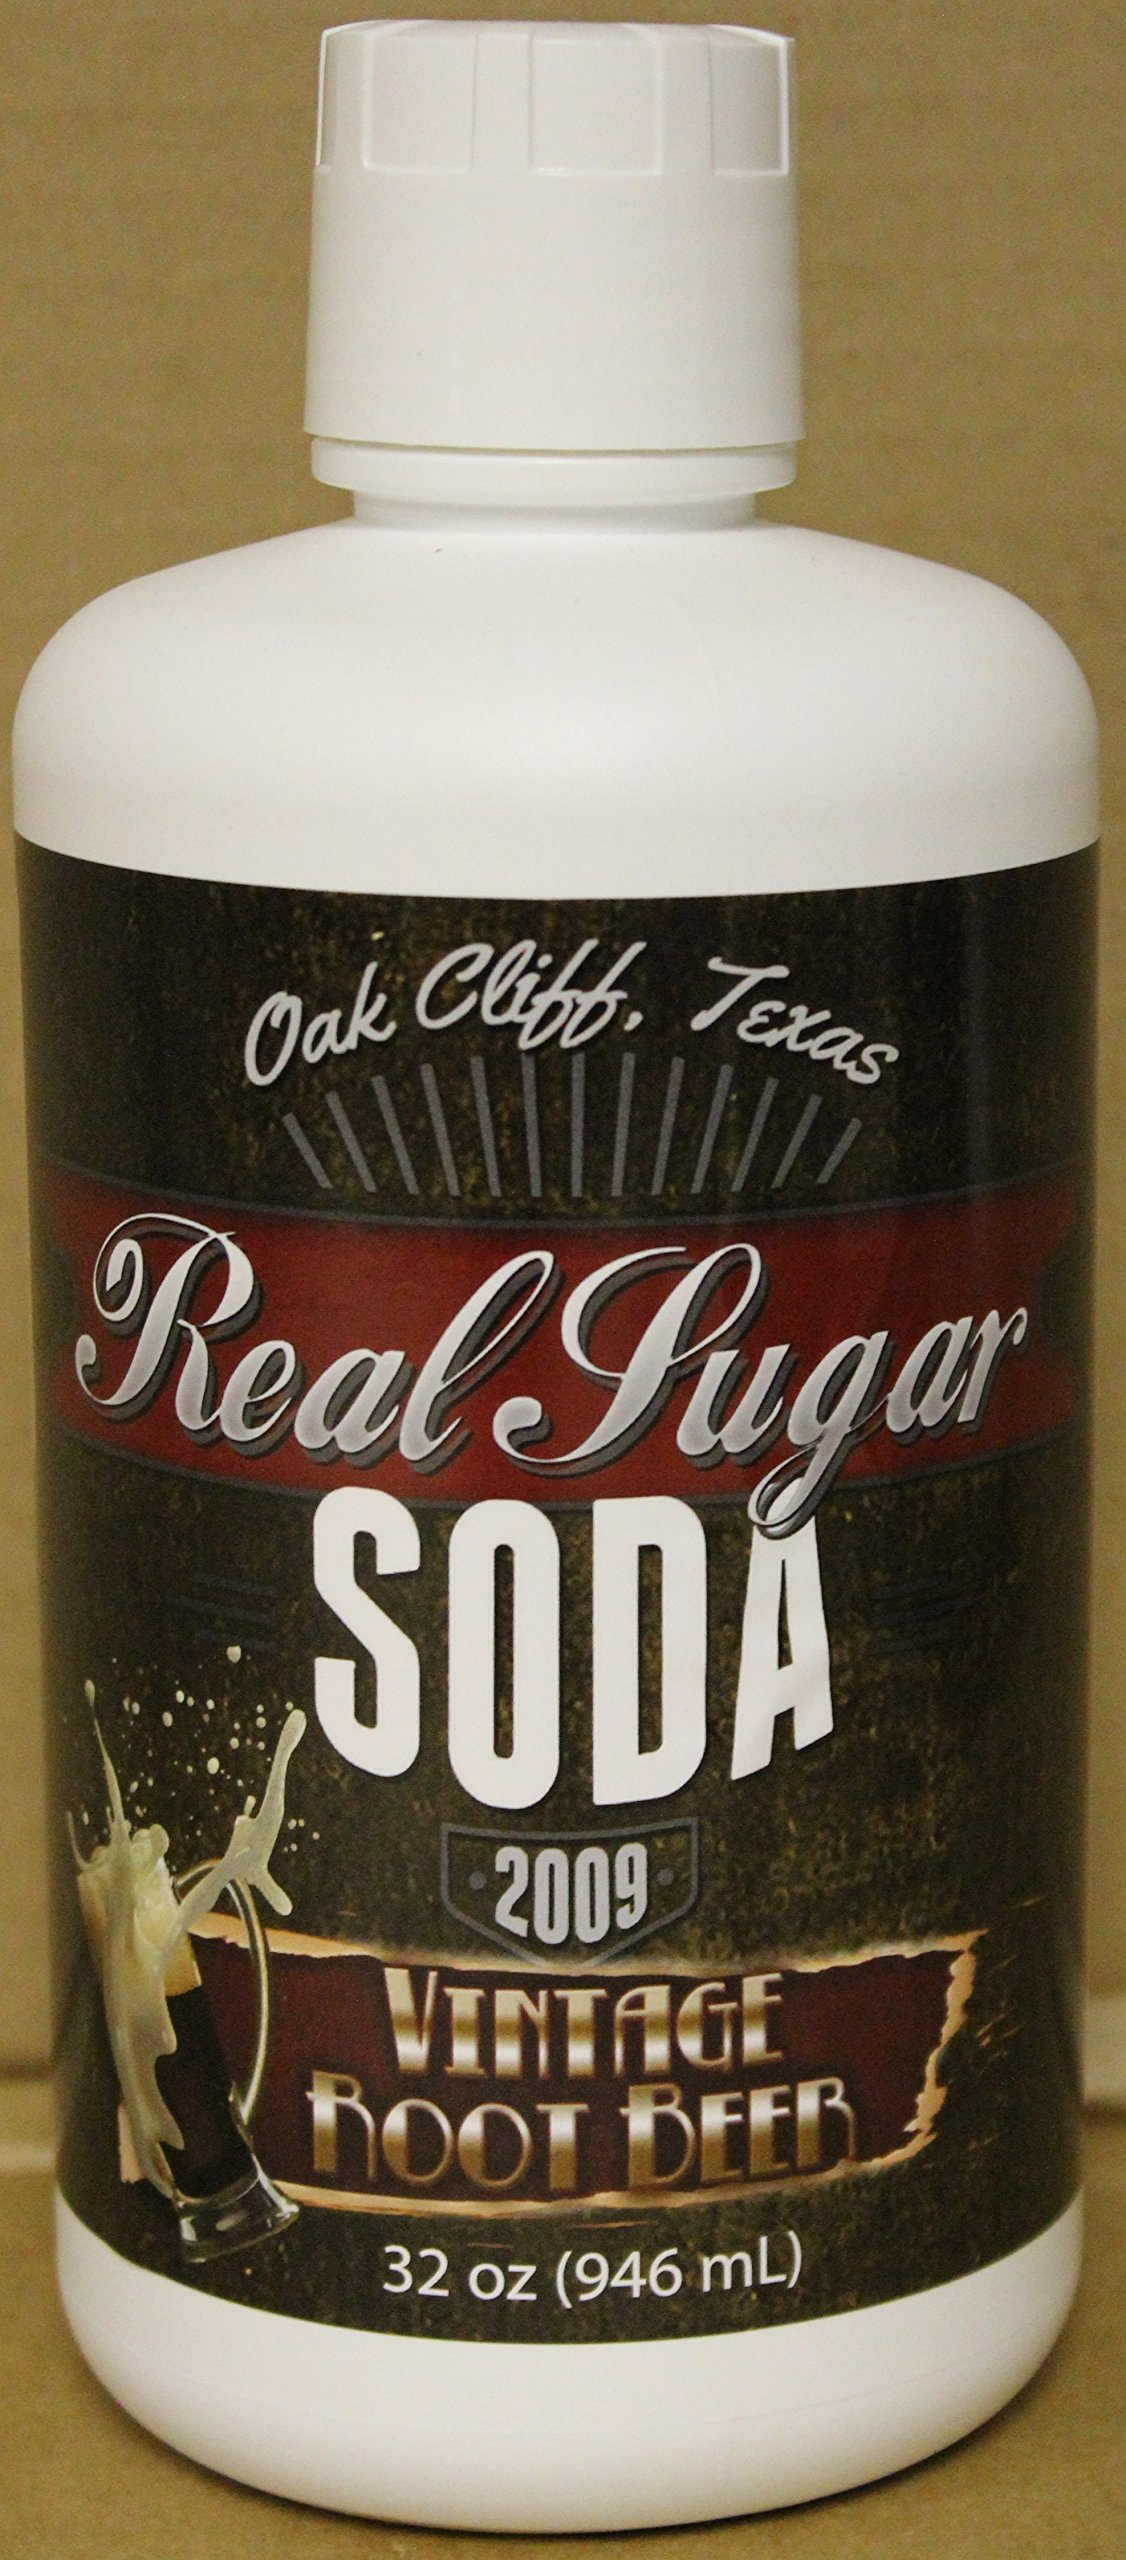 Vintage Root Beer Cane Sugar Soda Syrup 12 Pack Case by Real Sugar Soda (Image #1)